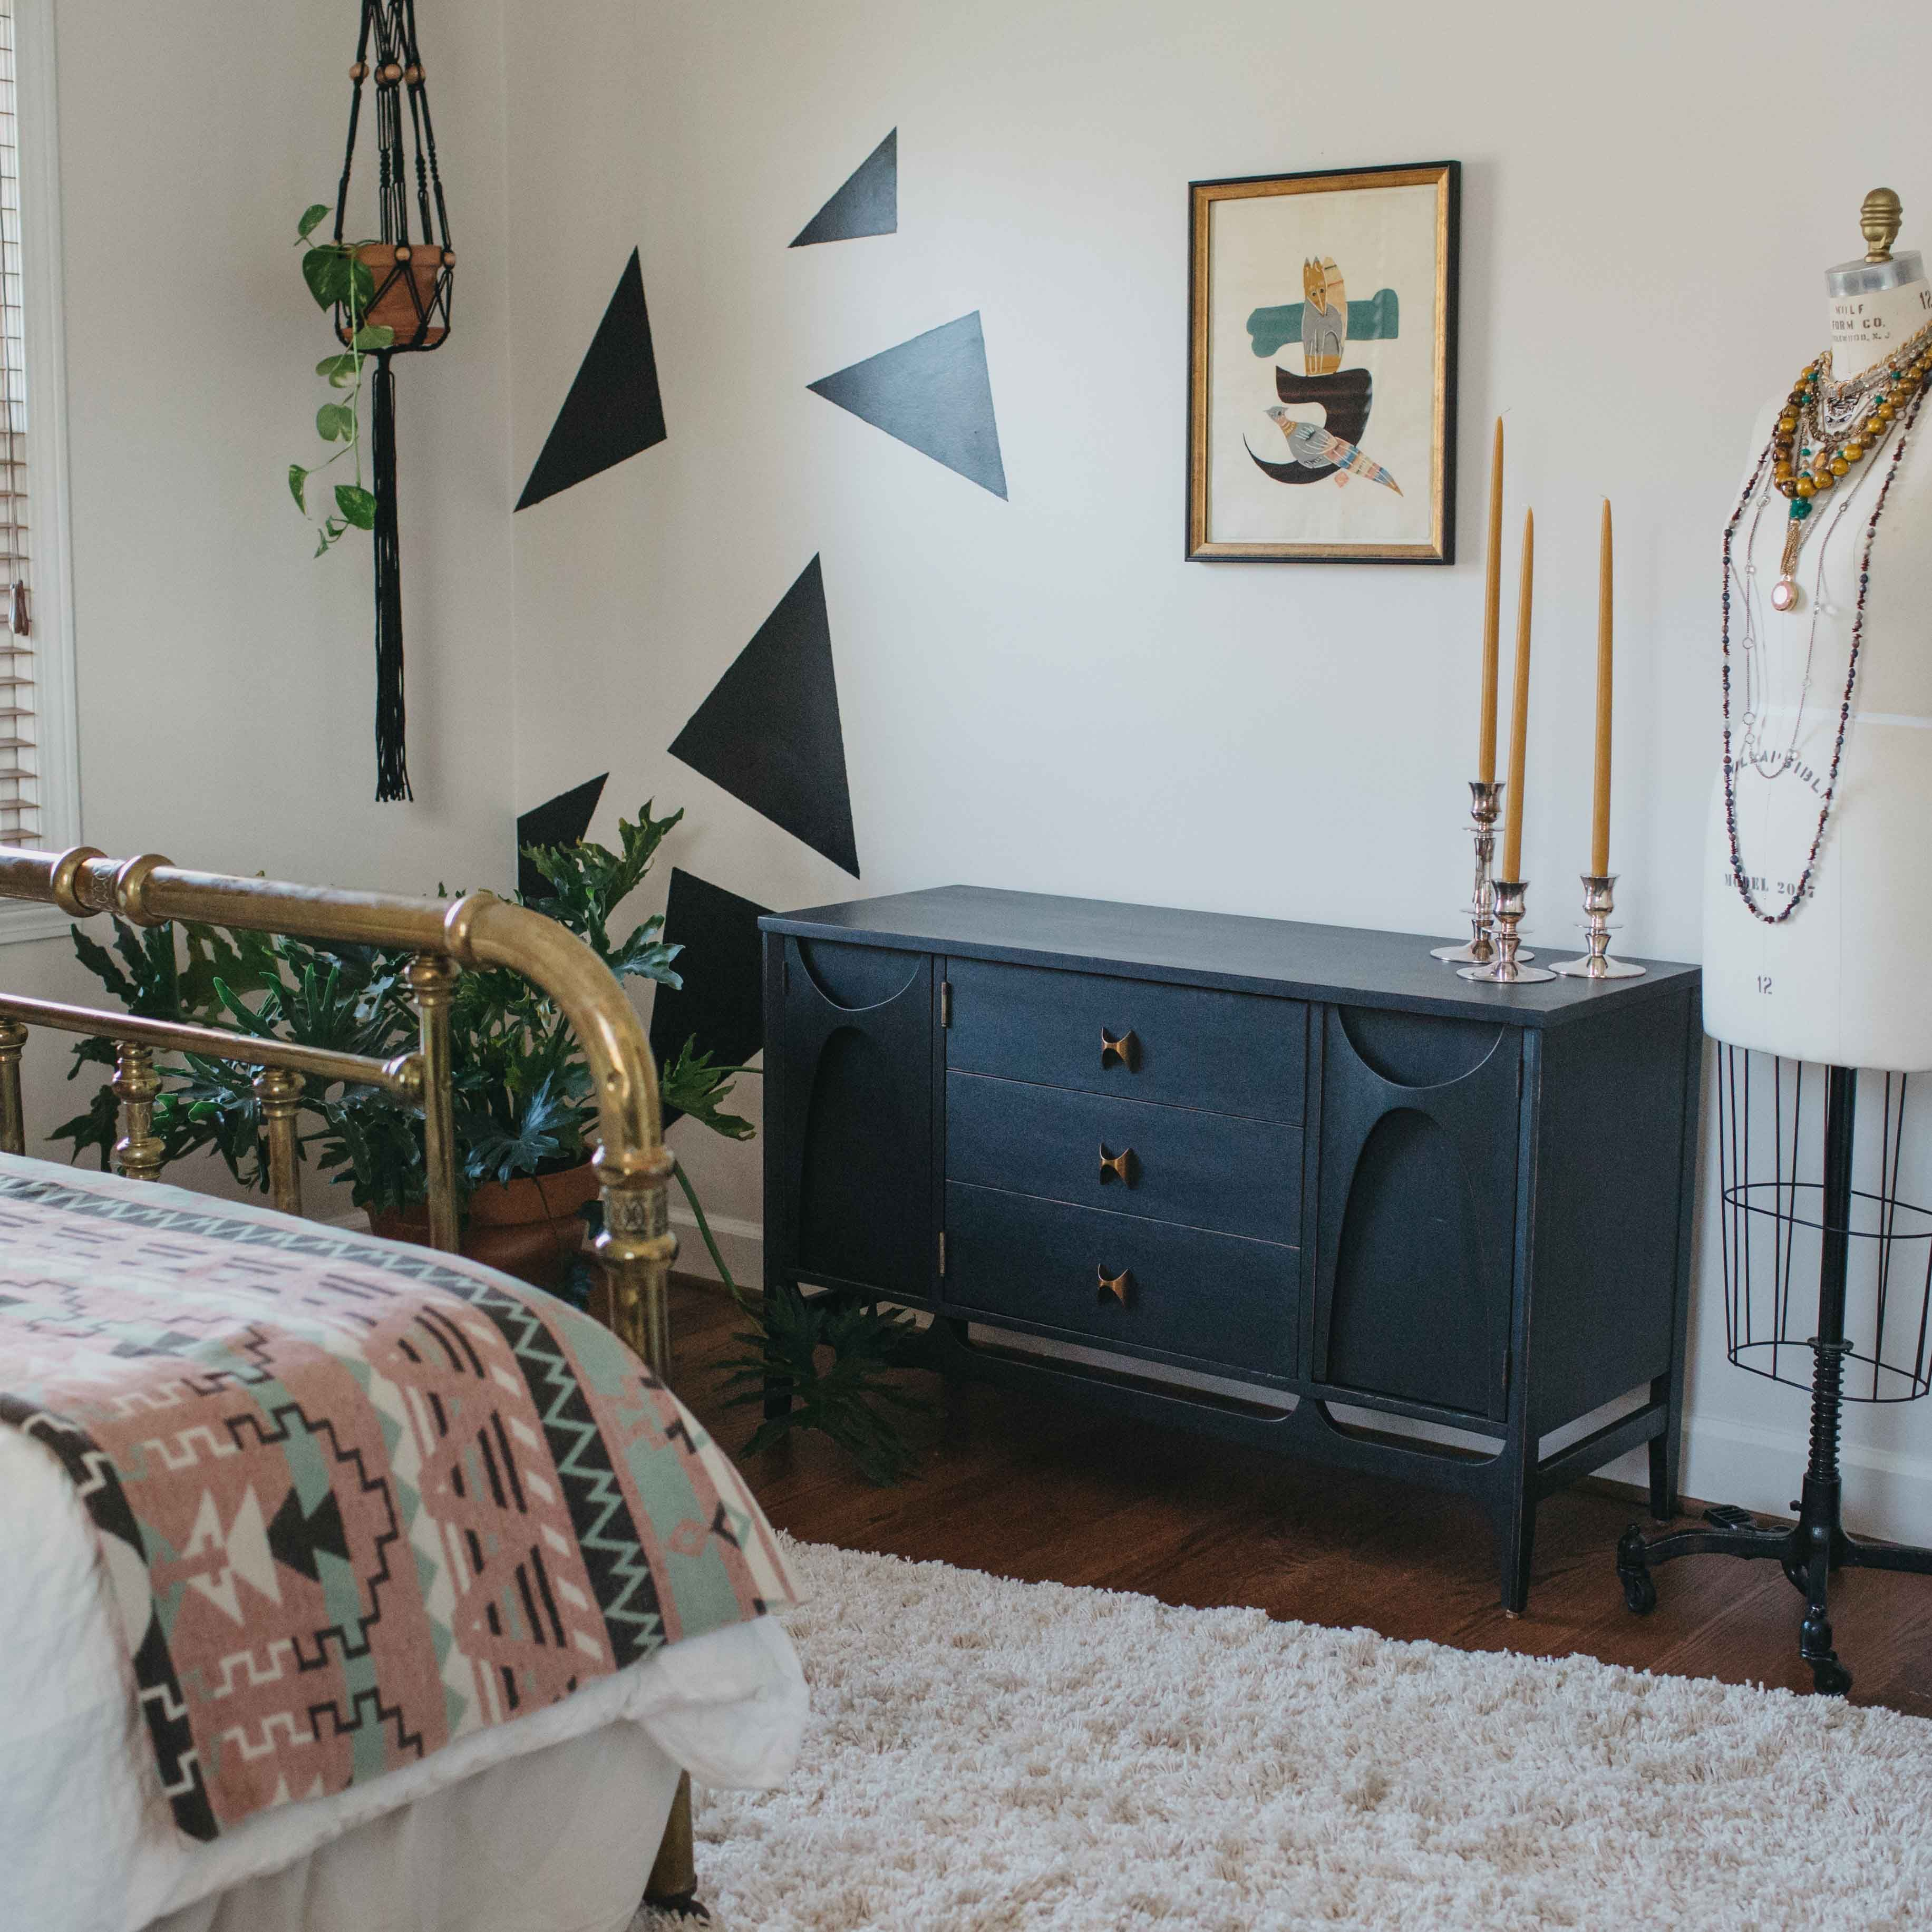 A Vintage Filled Home In Greenville, SC Designed To Feel